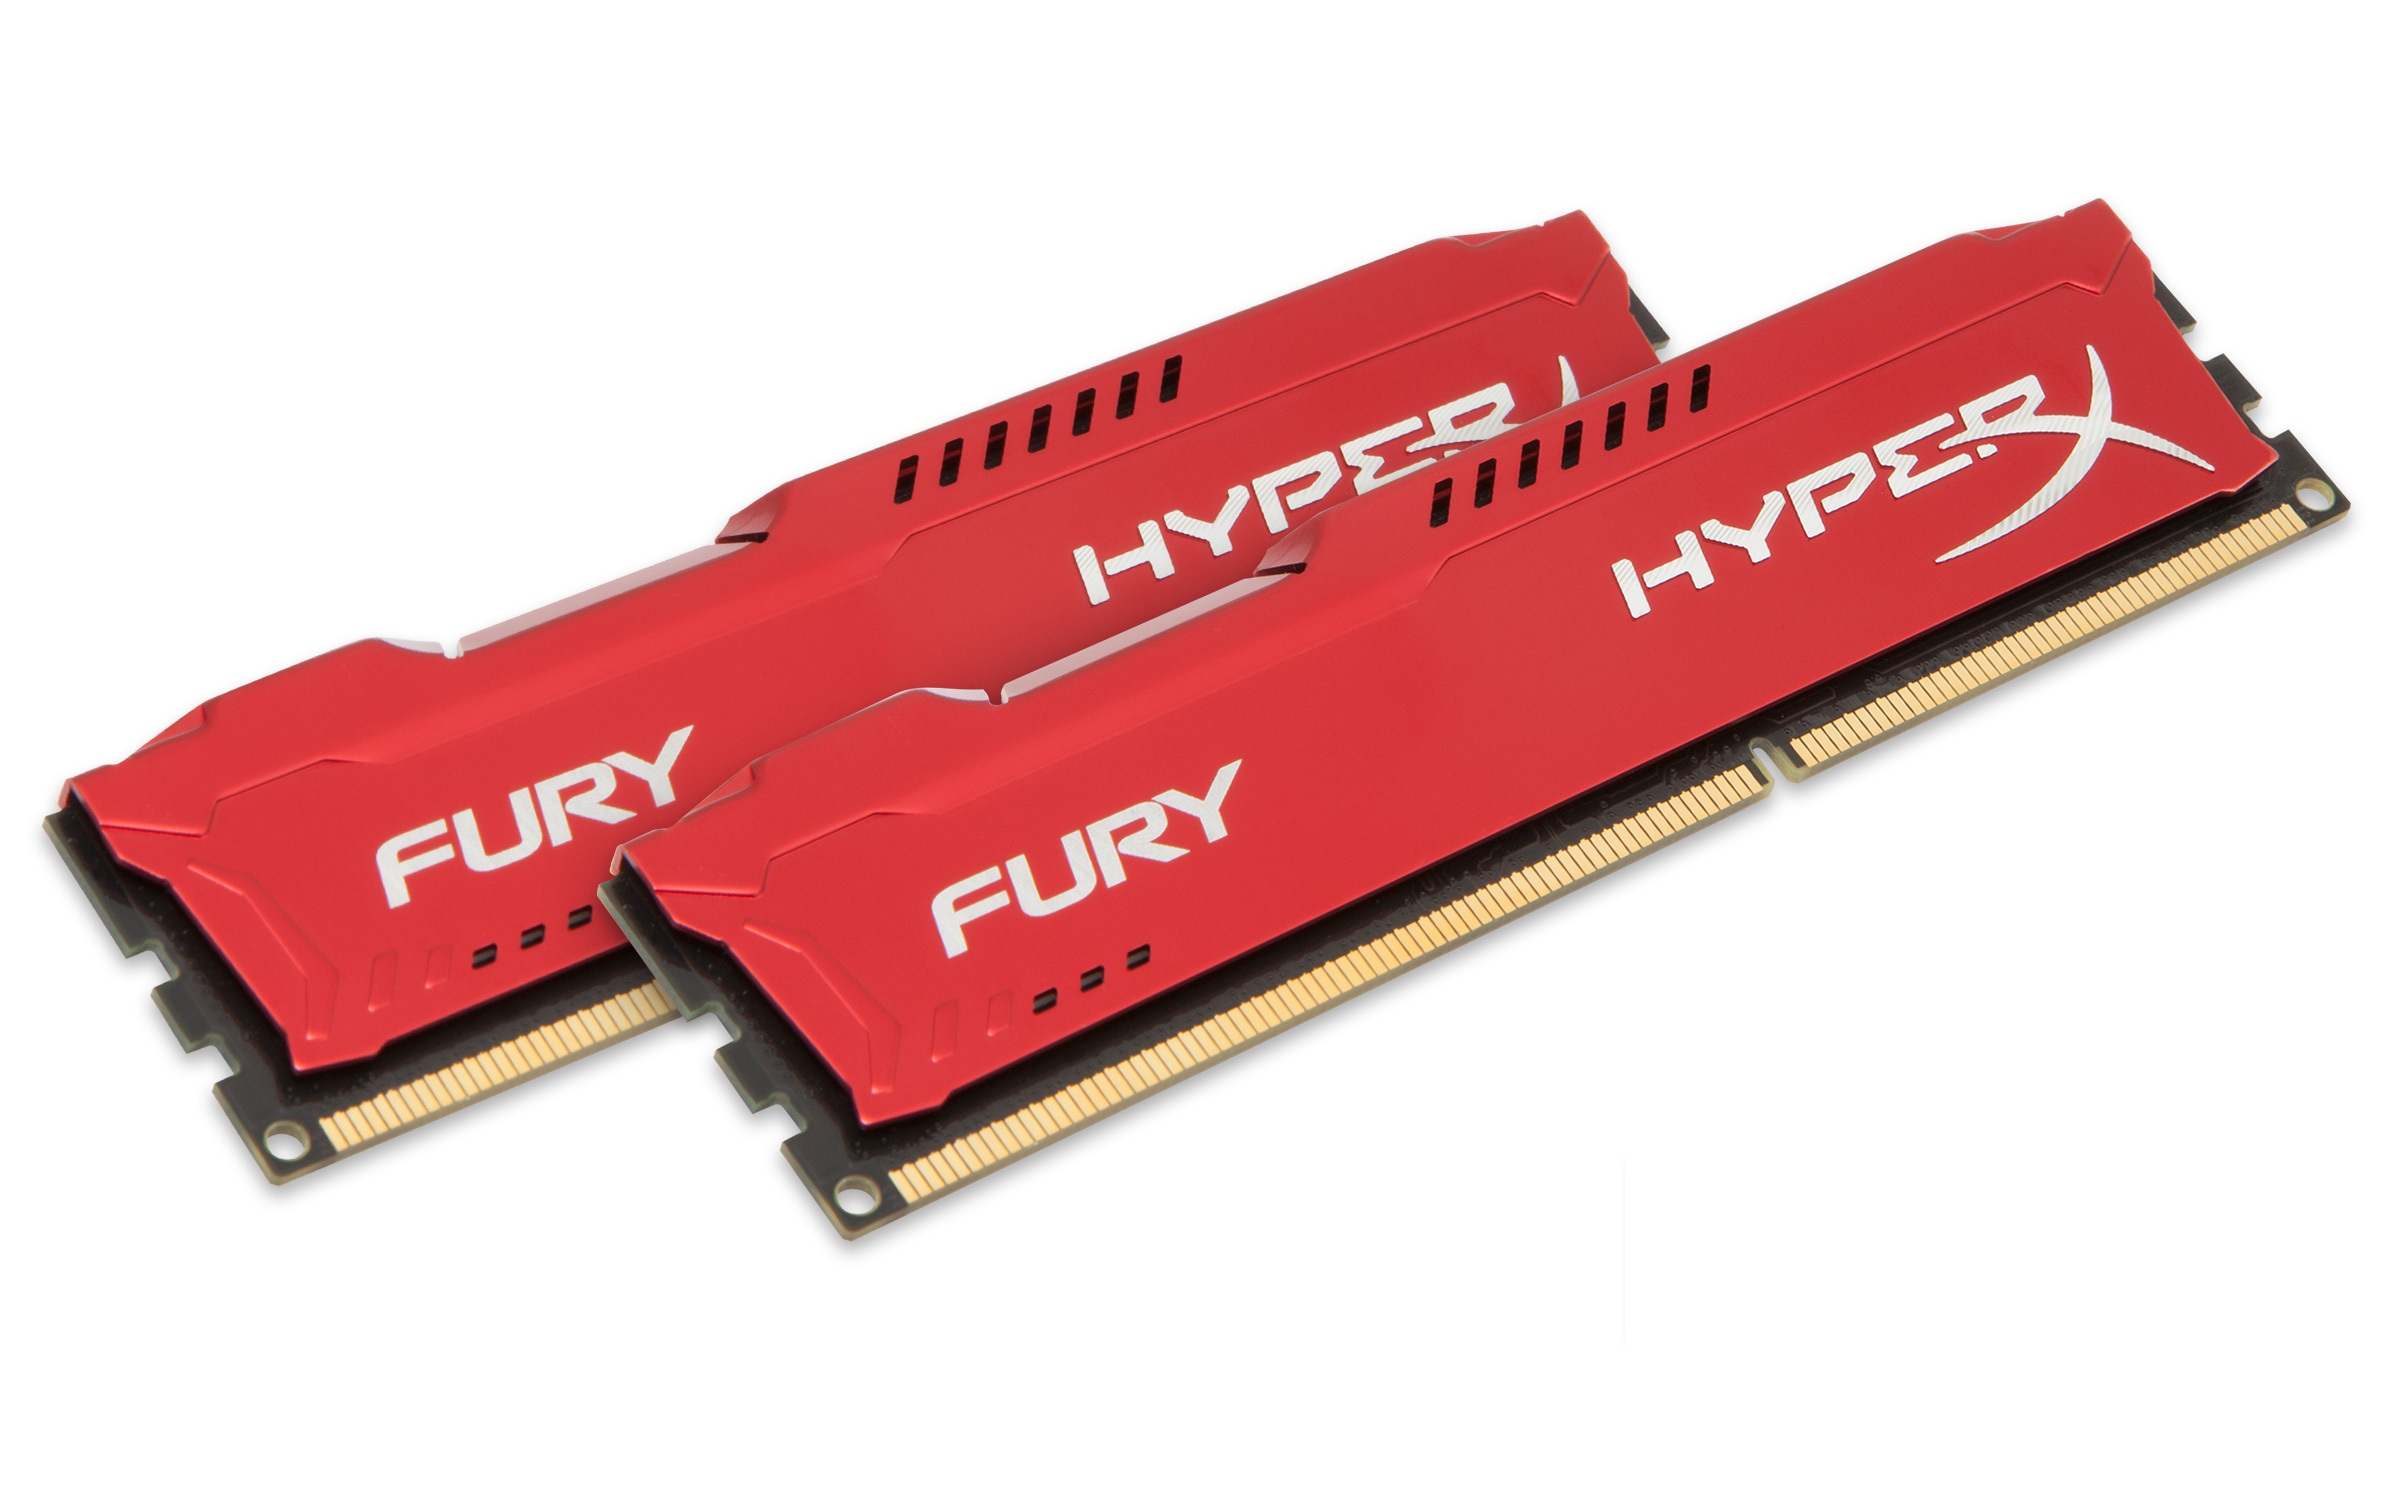 price of 16GB 1866MHz DDR3 CL10 DIMM (Kit of 2) HyperX FURY Red on ShopHub | ecommerce, price check, start a business, sell online